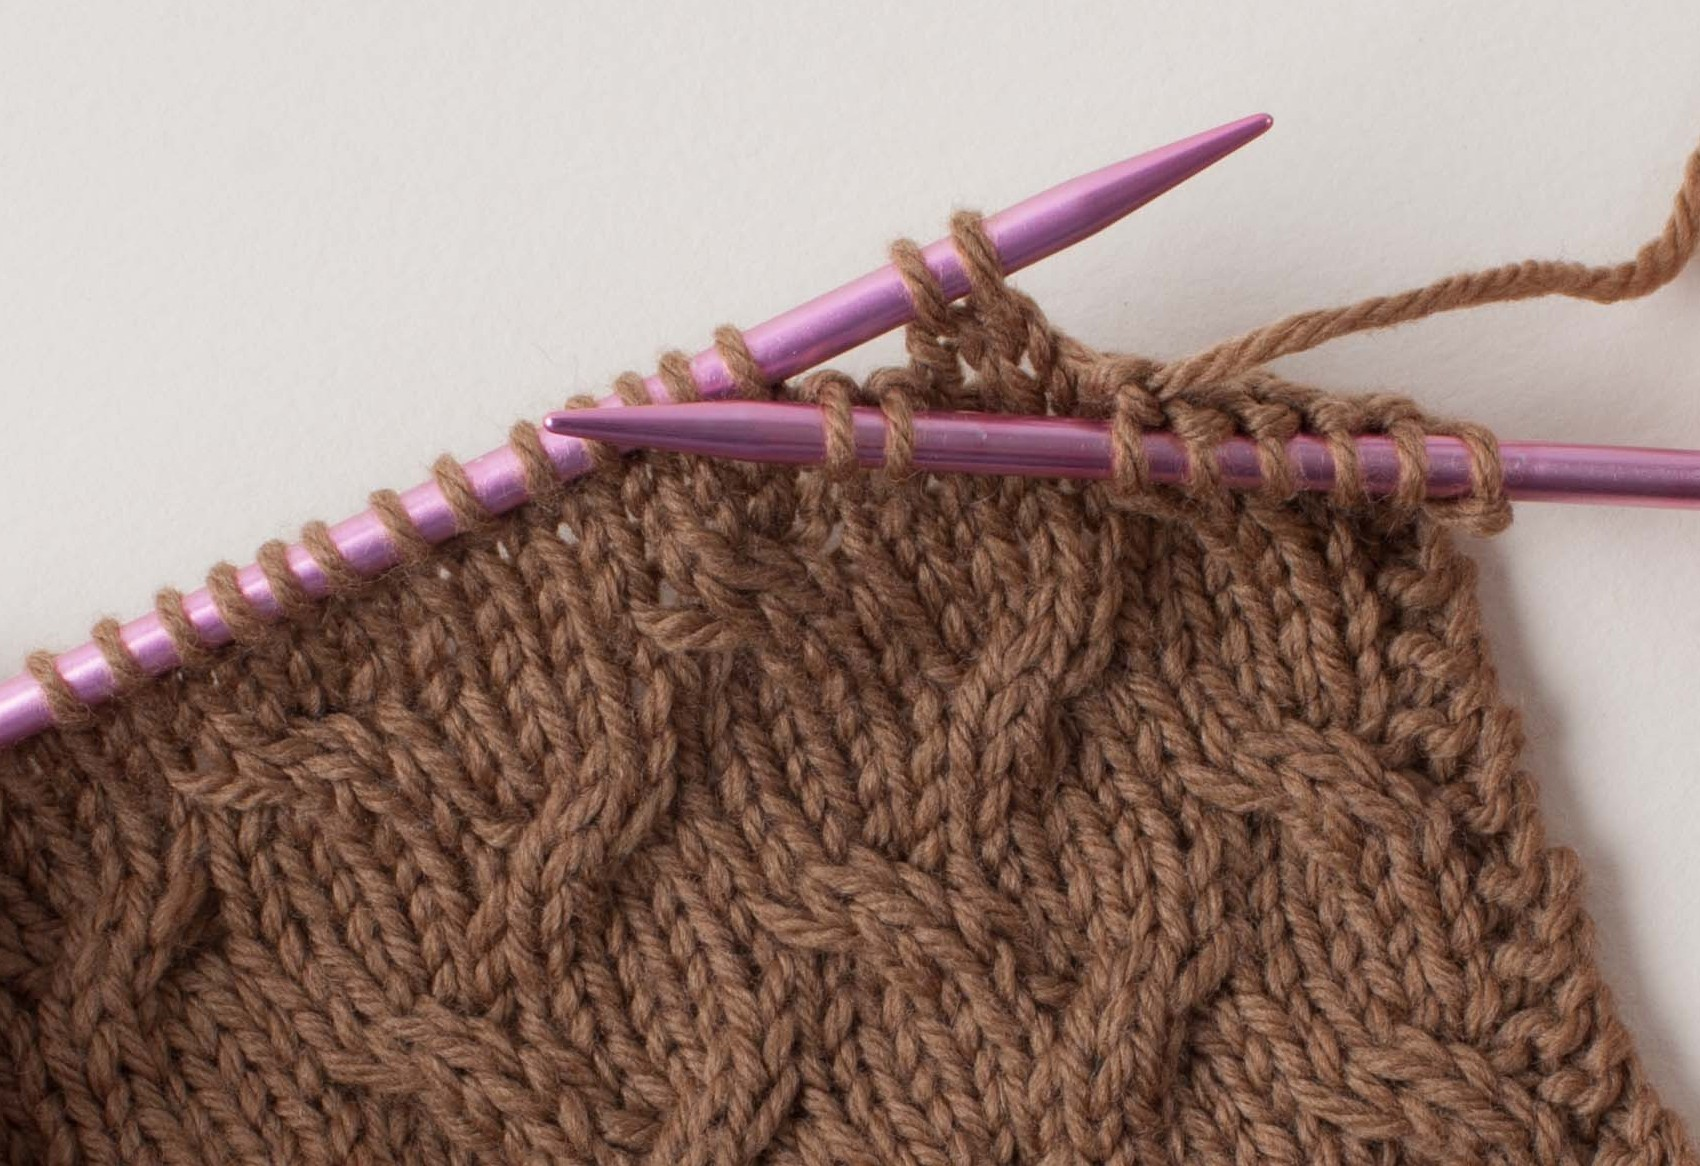 Knitting Cables Without Cable Needle : Knit tech cable knitting without a needle ennea